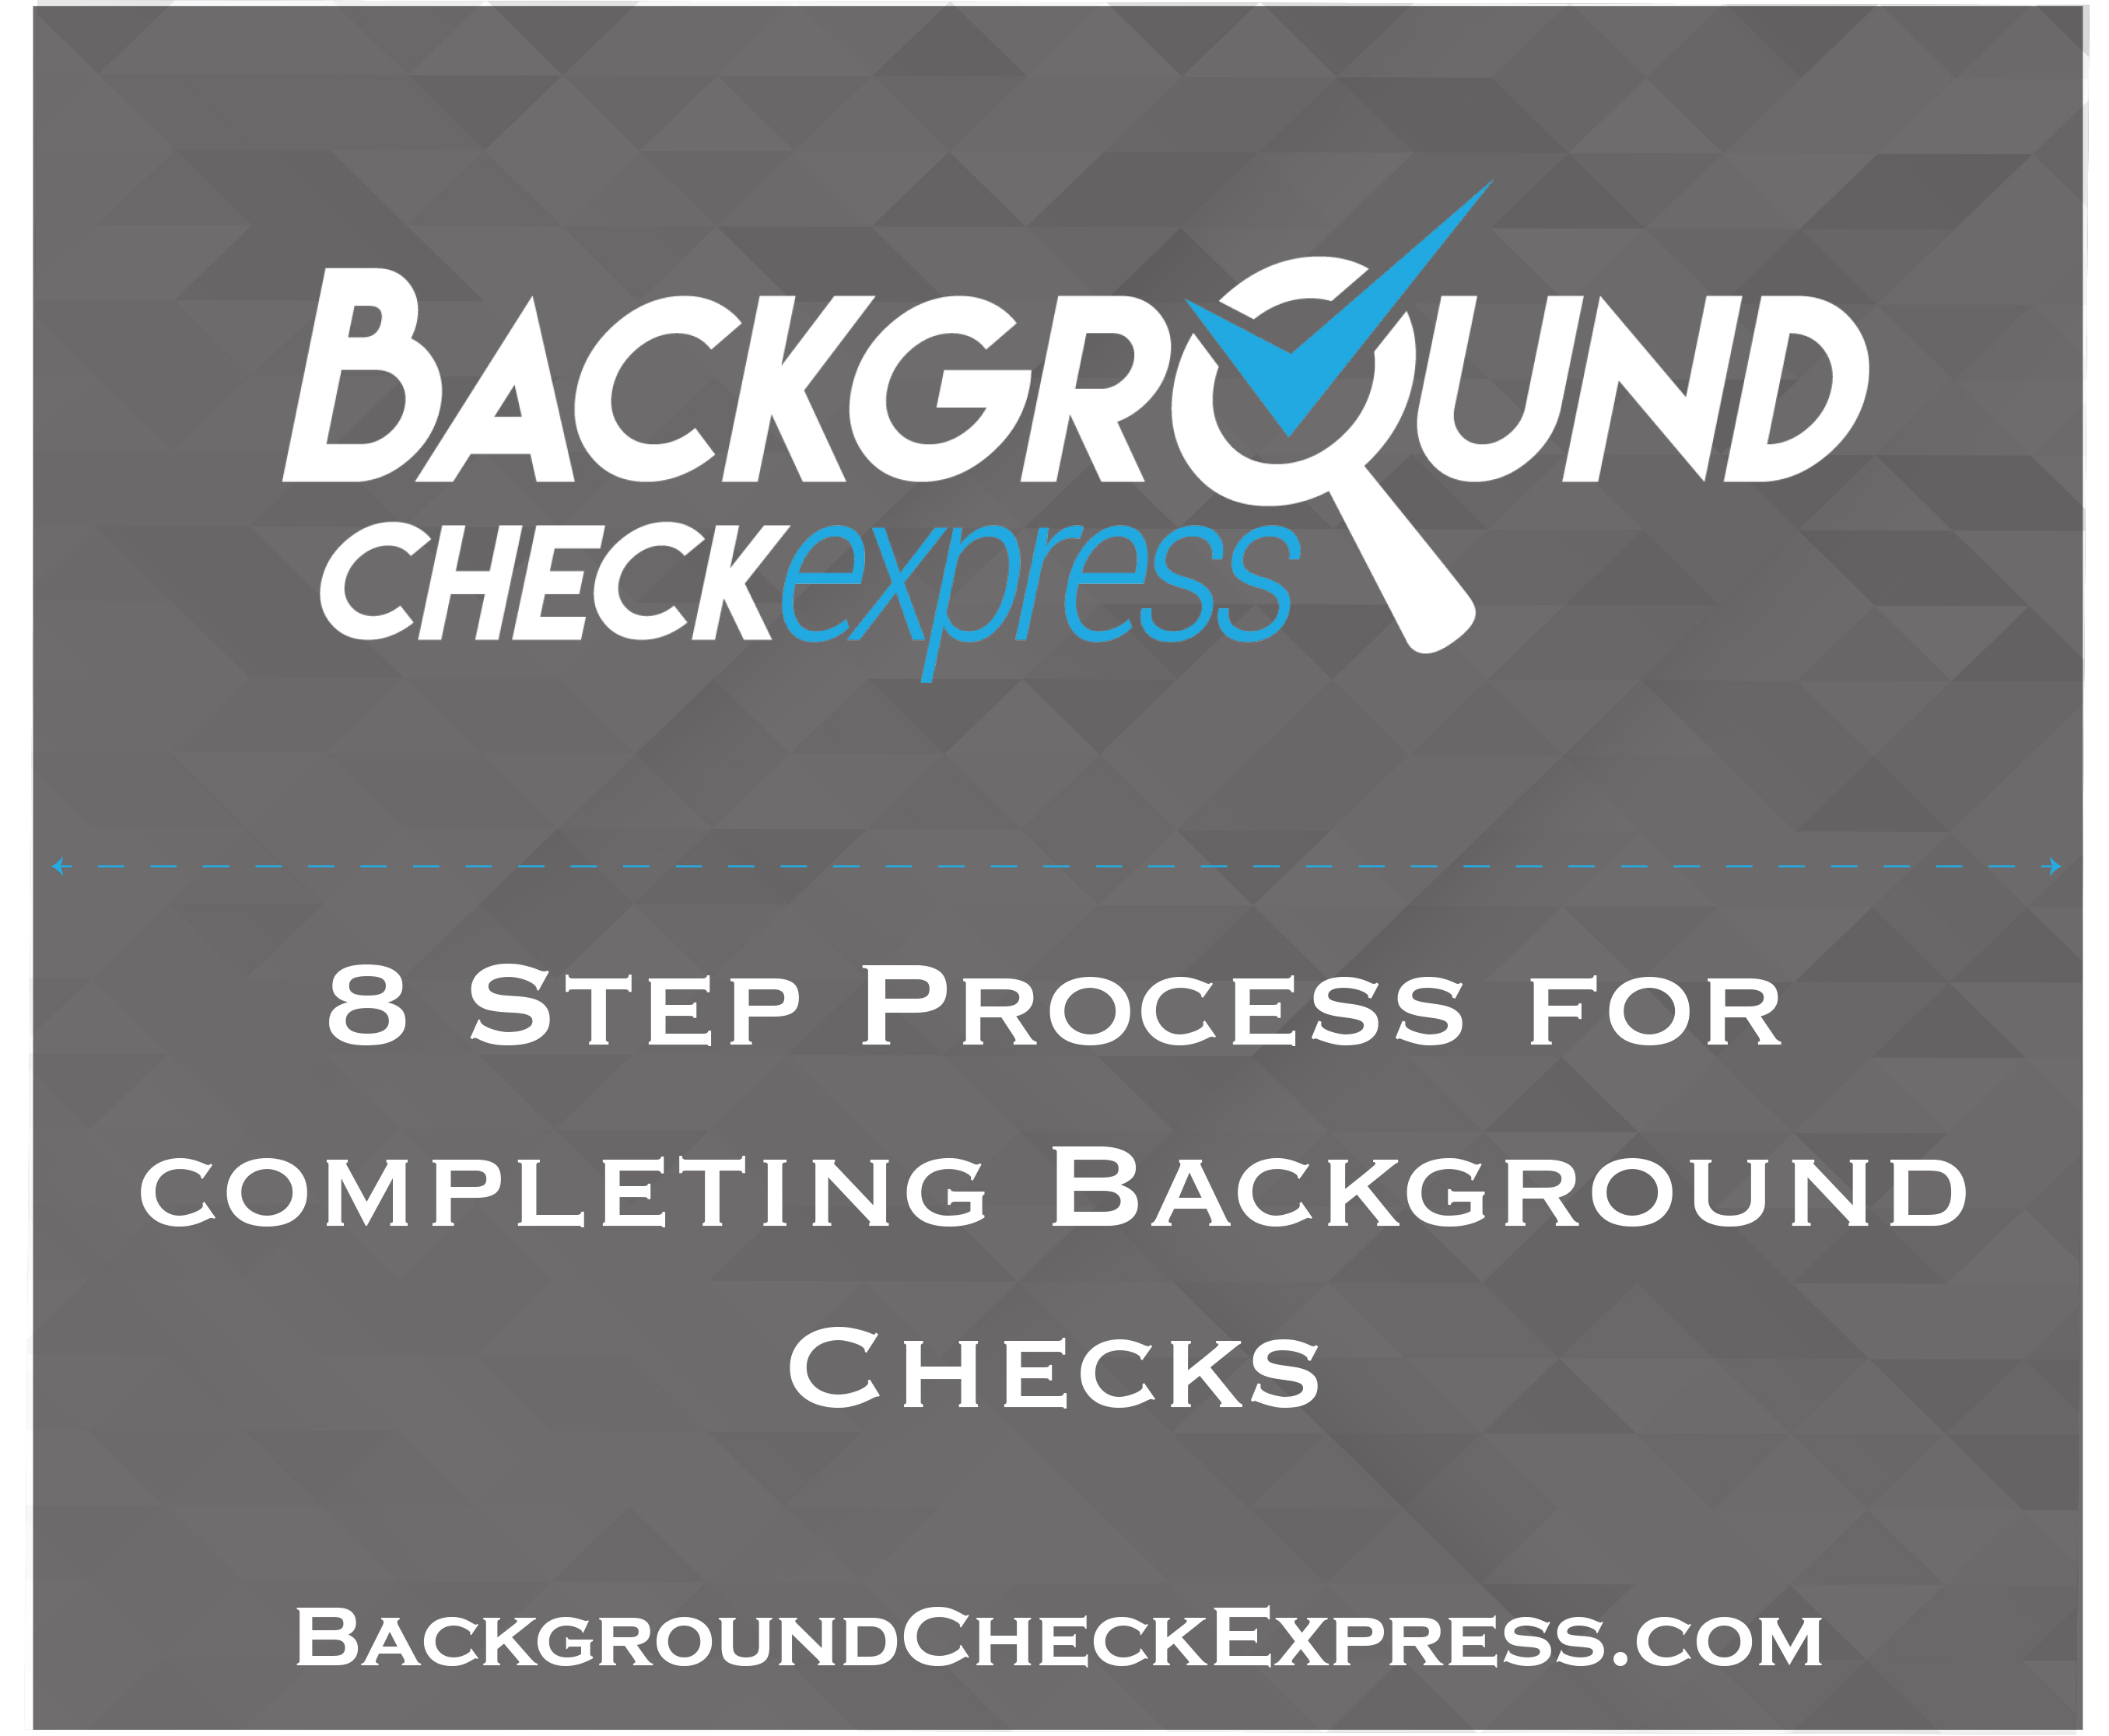 Background Check Express 8 Step Process [Infographic]